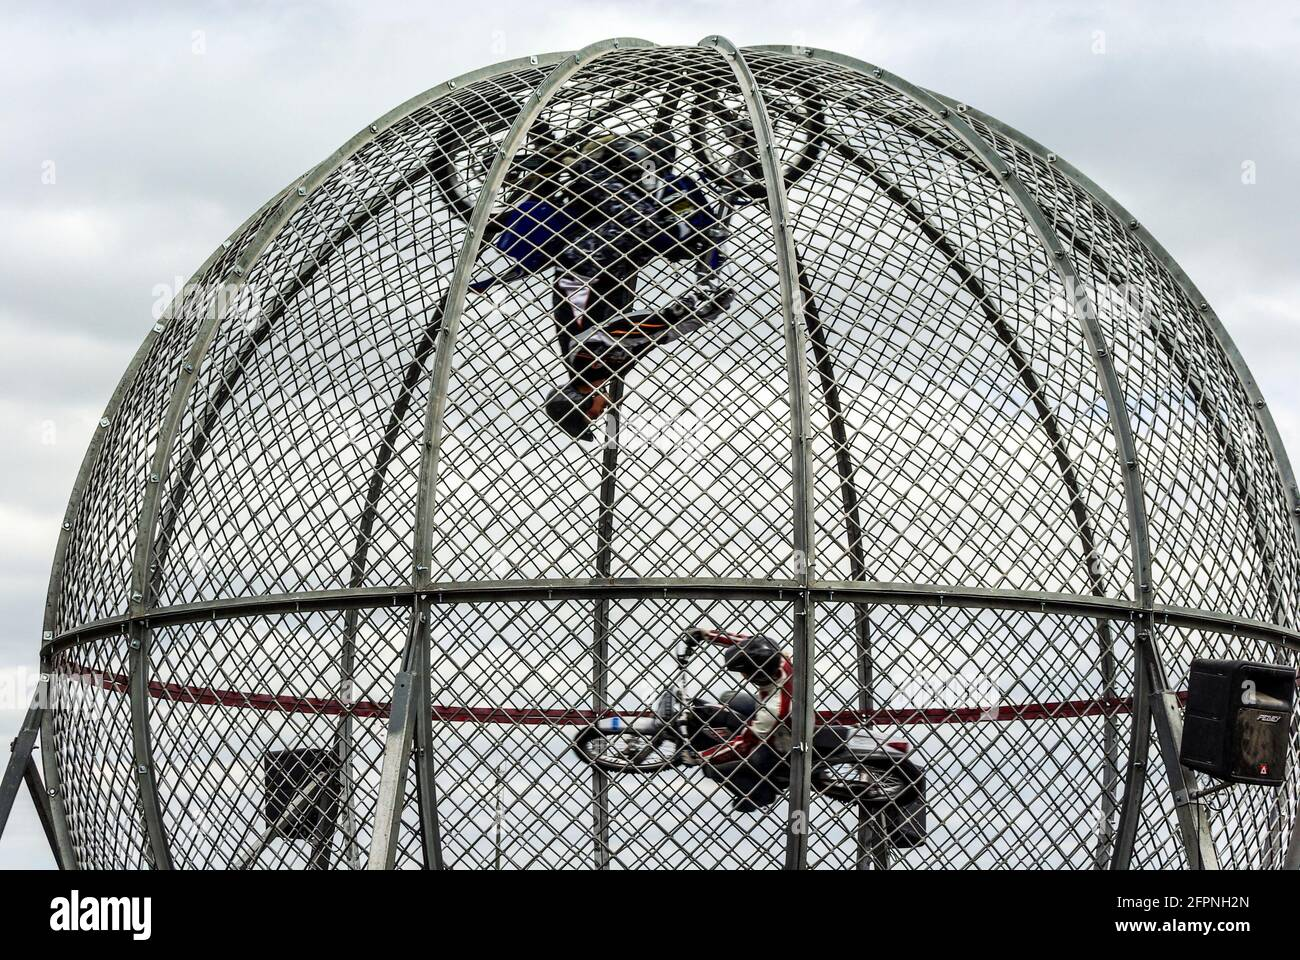 globe-of-death-motorcycle-riders-stunt-riding-inside-a-globe-motorbike-stunt-motorcyclists-inside-a-mesh-sphere-ball-circus-carnival-show-display-2FPNH2N.jpg